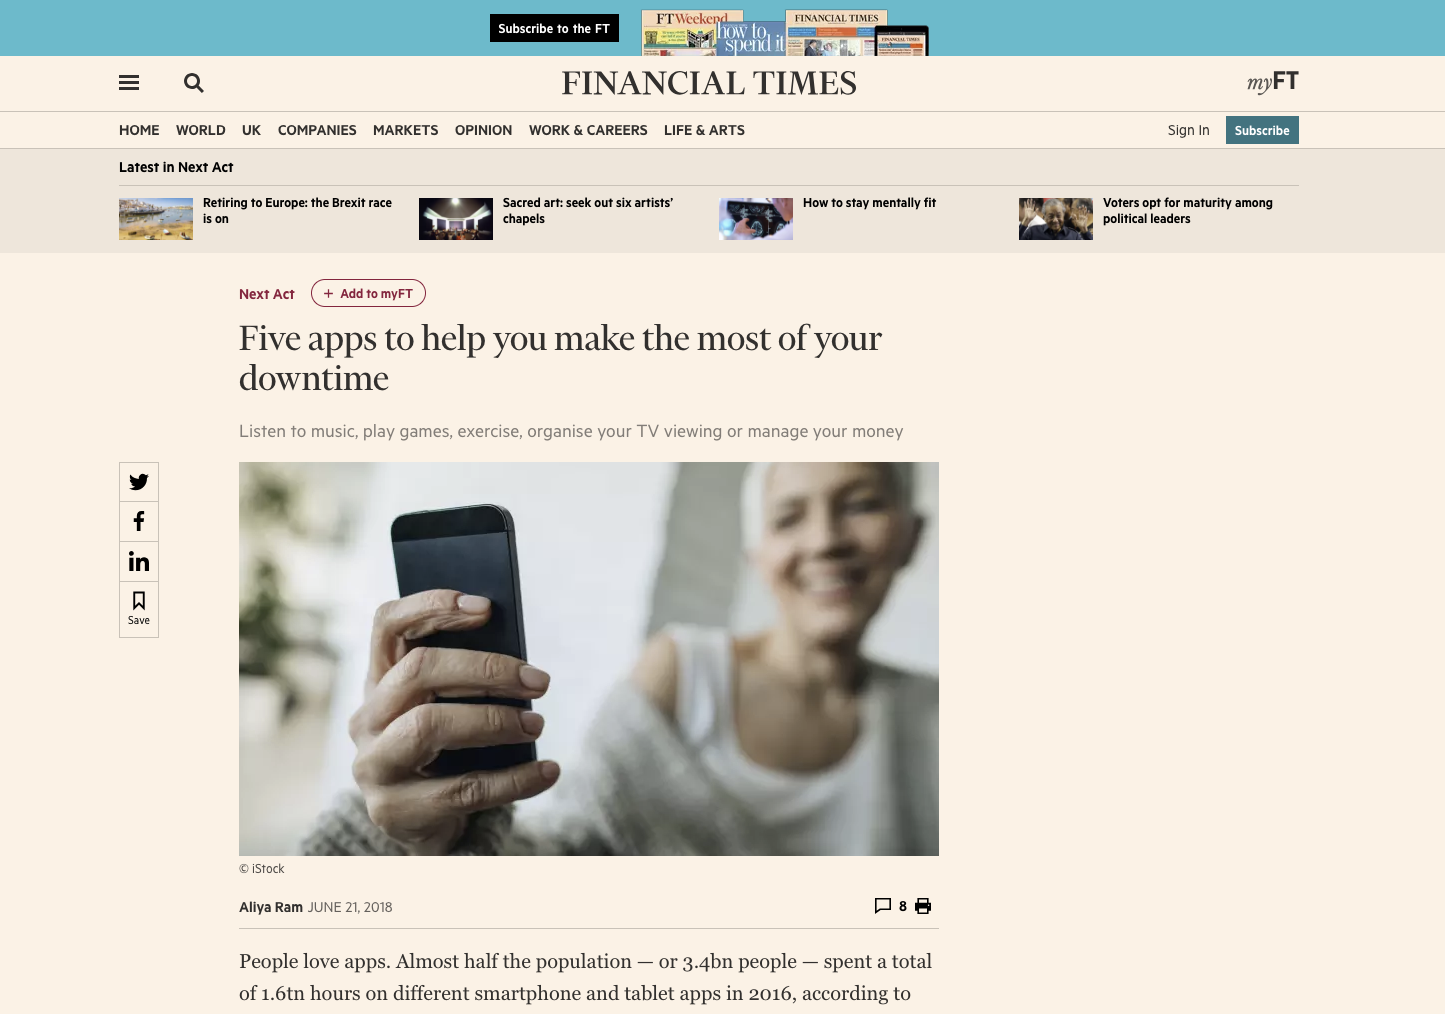 Financial Times article